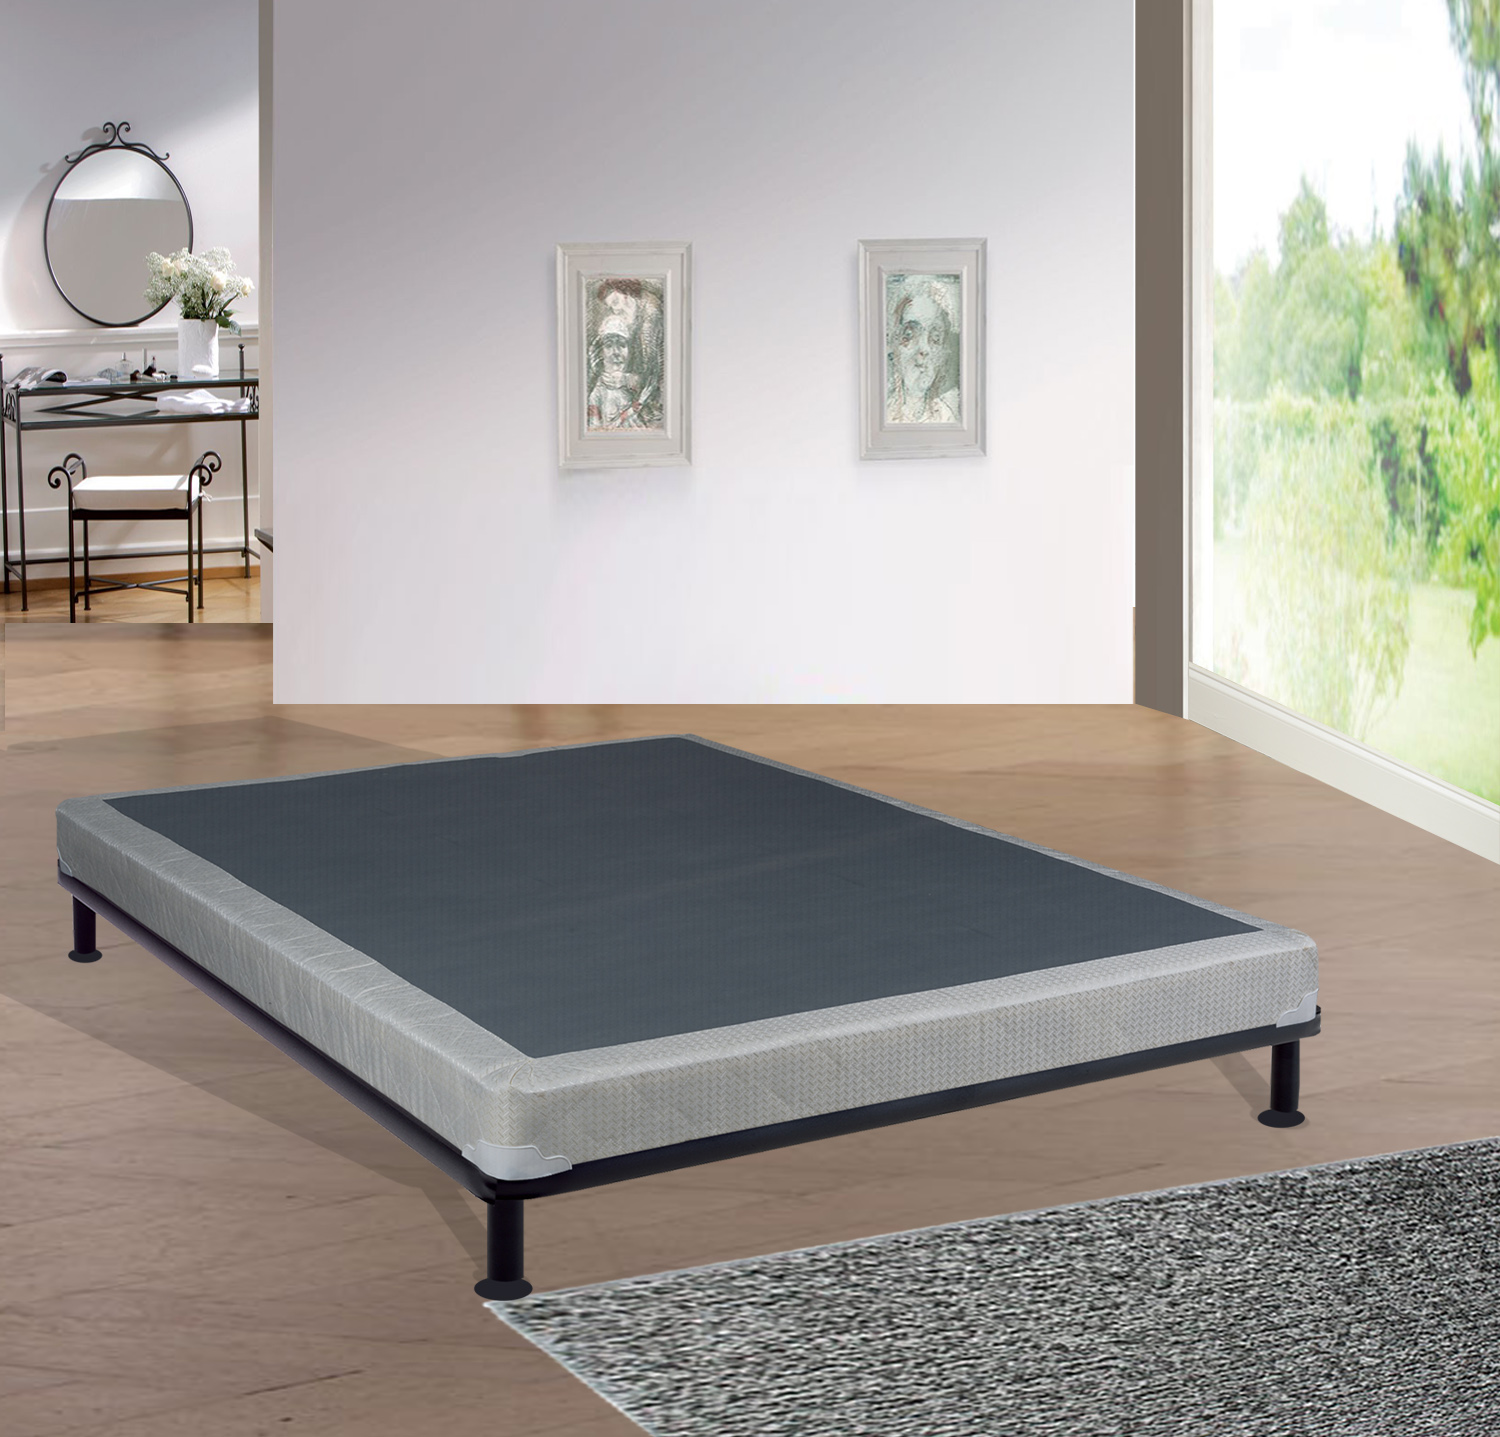 """WAYTON, 4-Inch Fully Assembled Long Lasting Box Spring/Foundation for Mattress, Twin Size 74"""" x 38"""""""